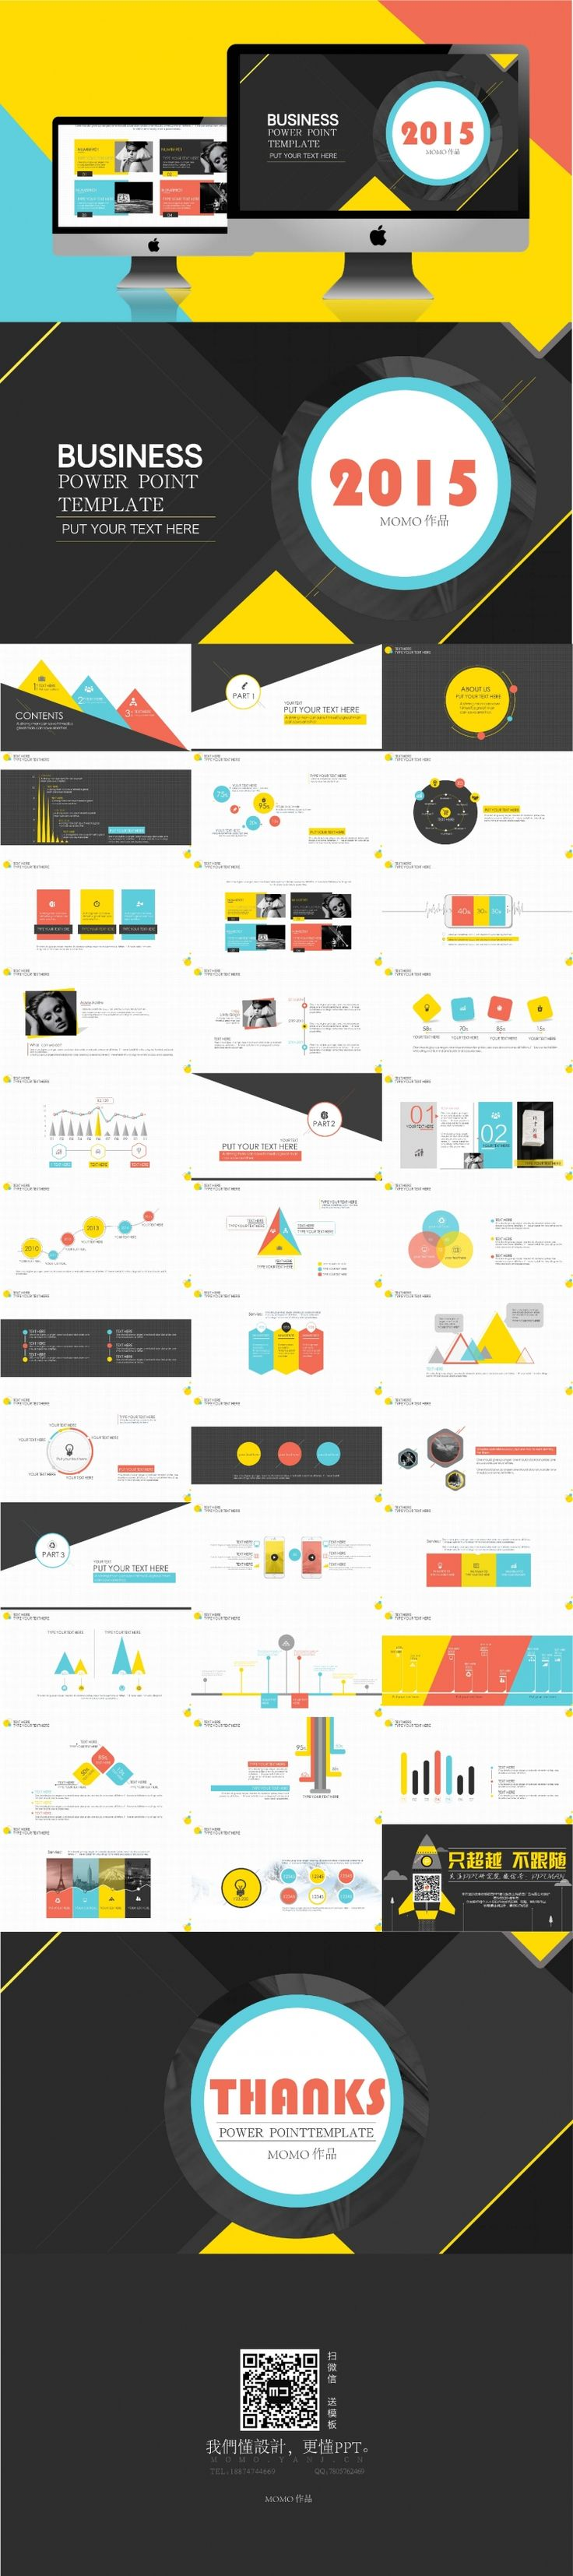 BUSINESS POWERPOINT TAMPLATE